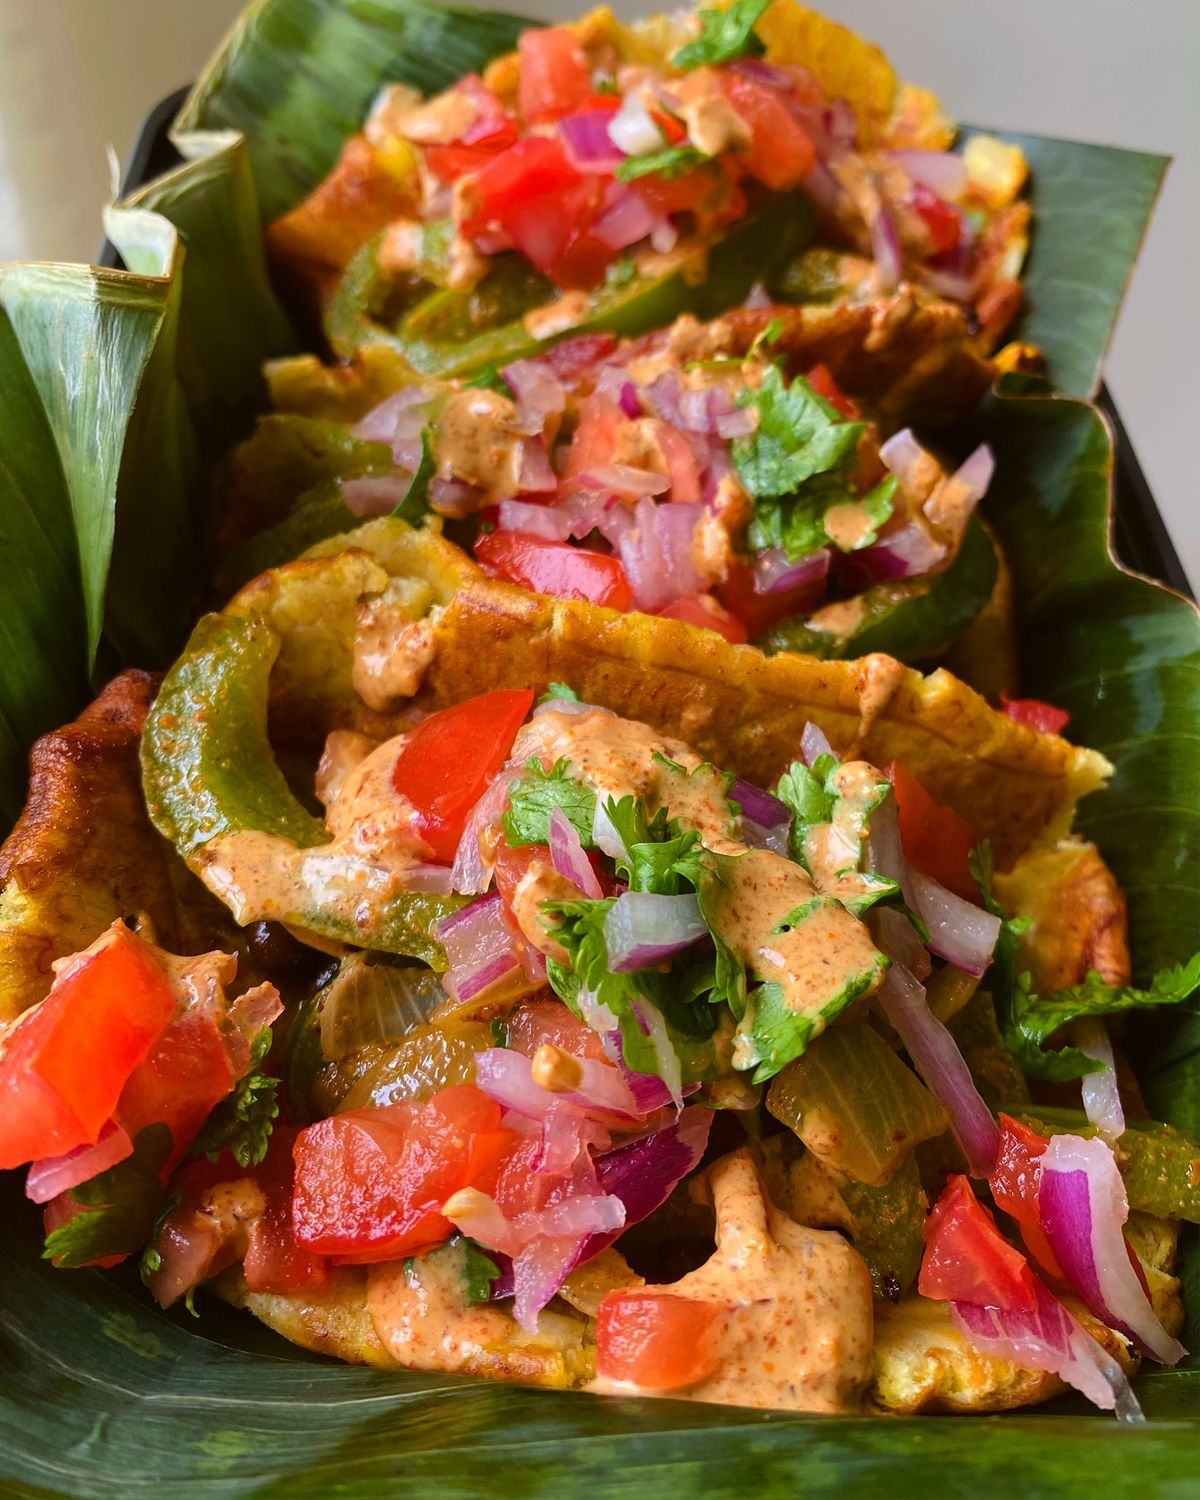 Three tacos filled with plantains, tomatoes, red onions, peppers, and green herbs drizzled in an orange sauce and laying on green banana leaves